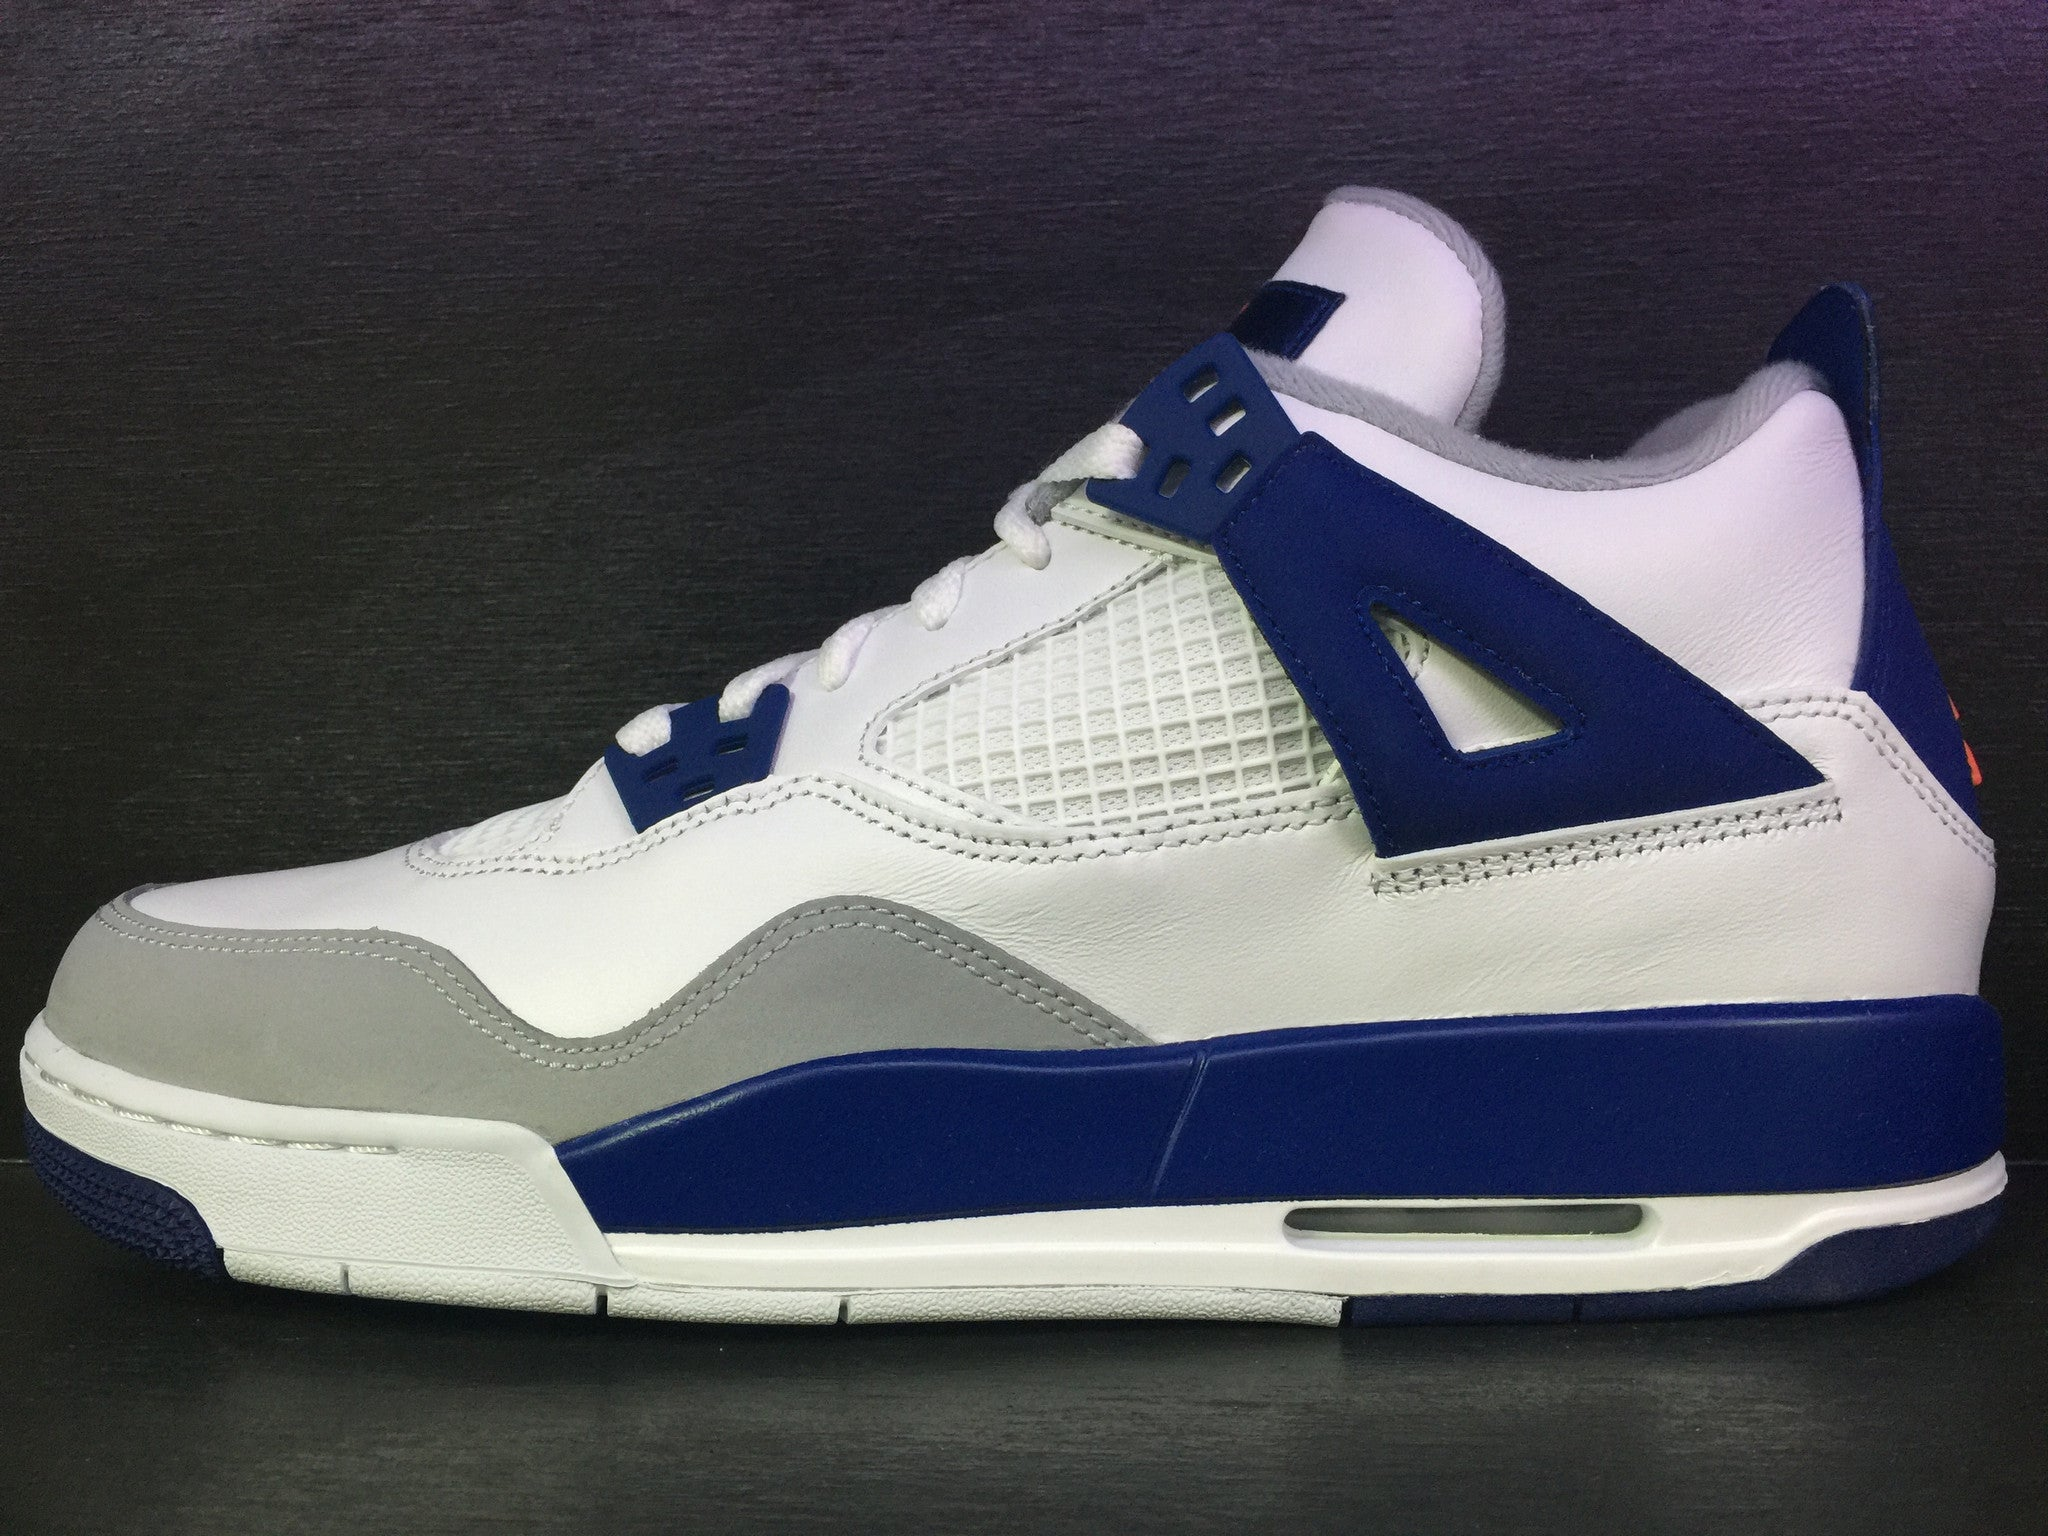 Air Jordan 4 Retro 'Deep Royal Blue'